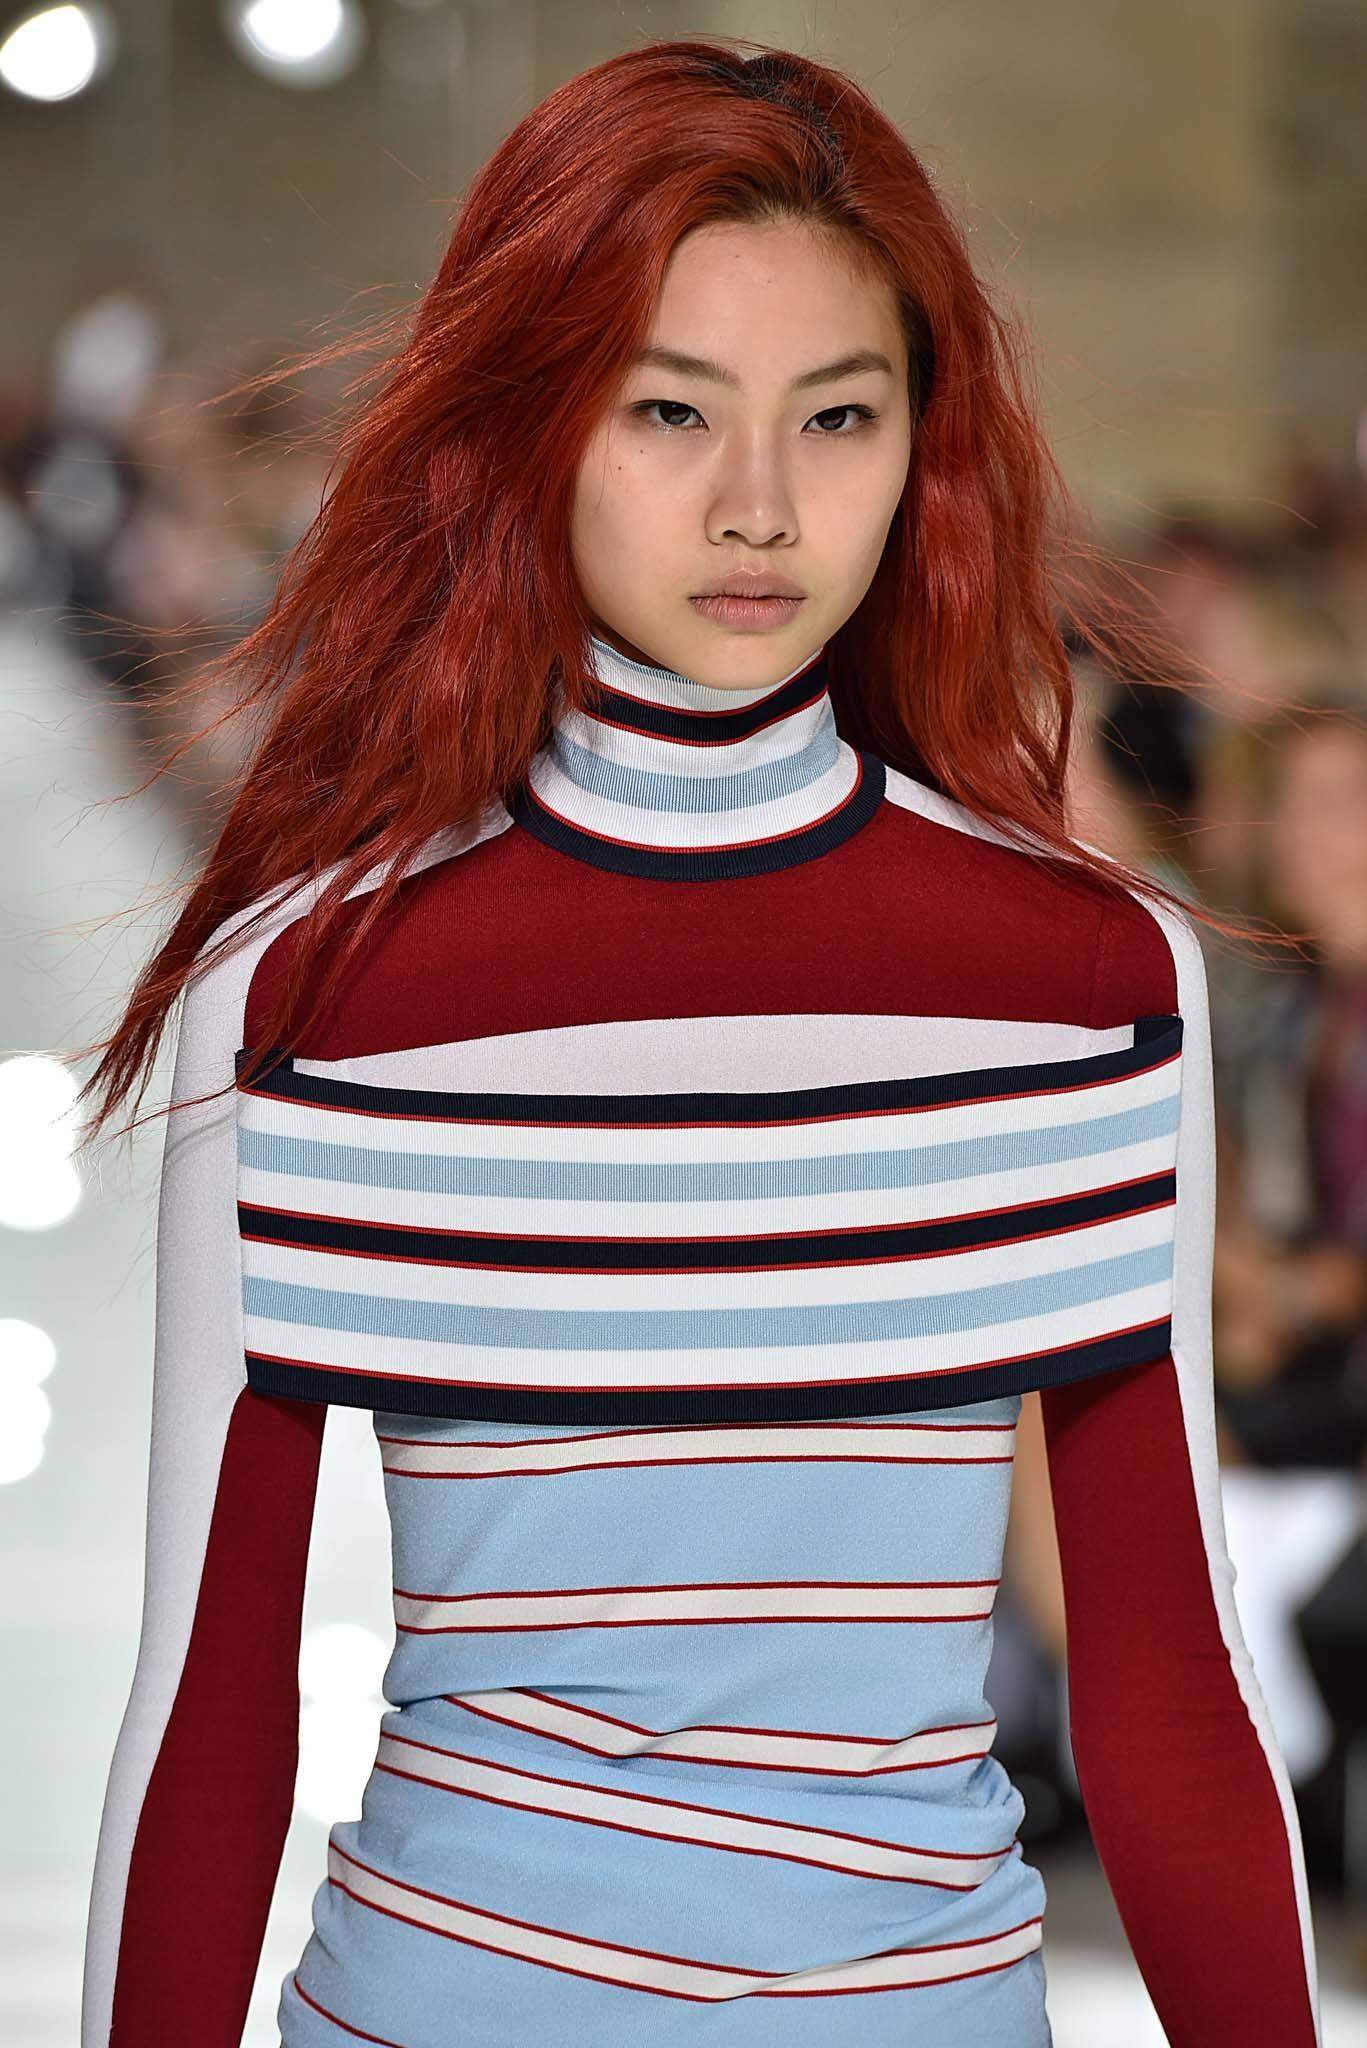 Model on runway with long tousled red hair wearing a striped outfit at Louis Vuitton SS18.